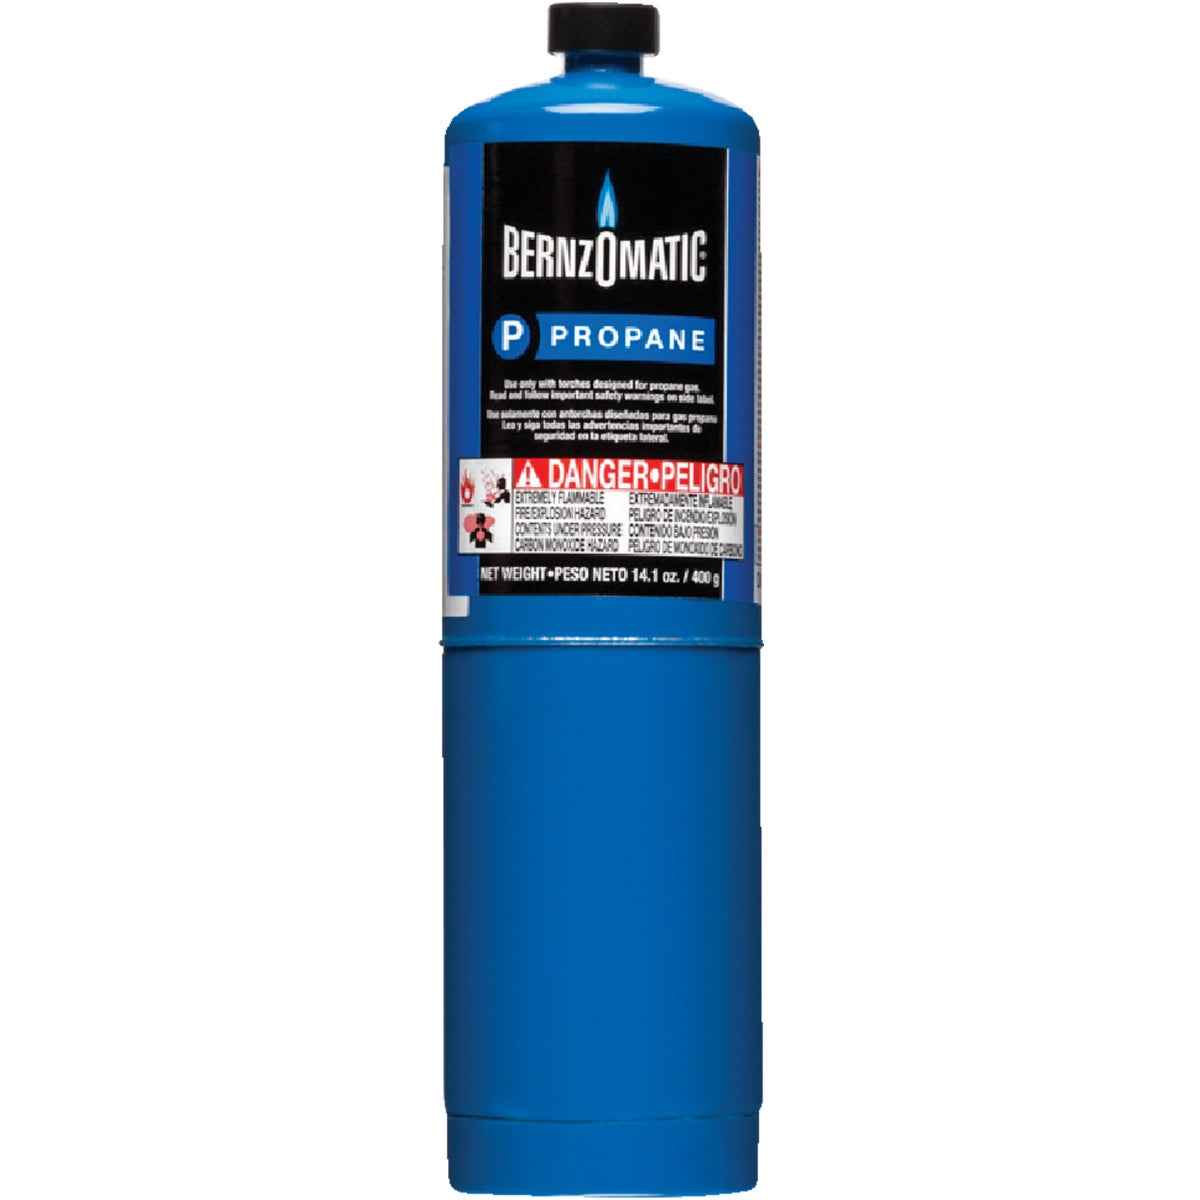 14.1OZ PROPANE CYLINDER - 304182 by Worthington